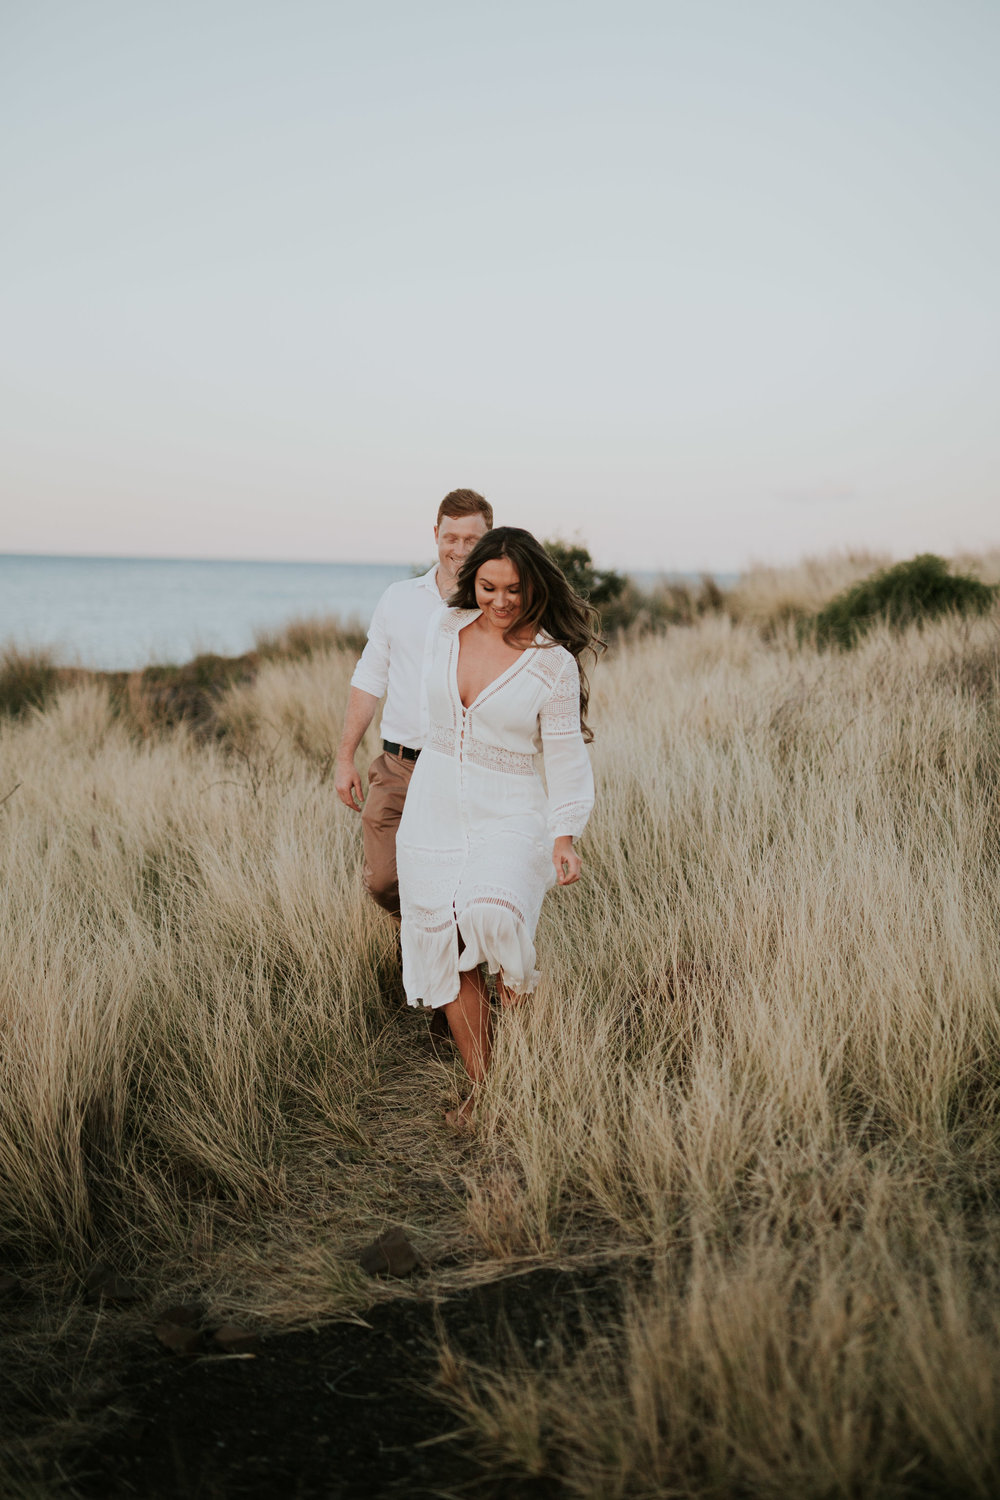 shanae+grant+Kiama+Engagement+Session-68.jpg